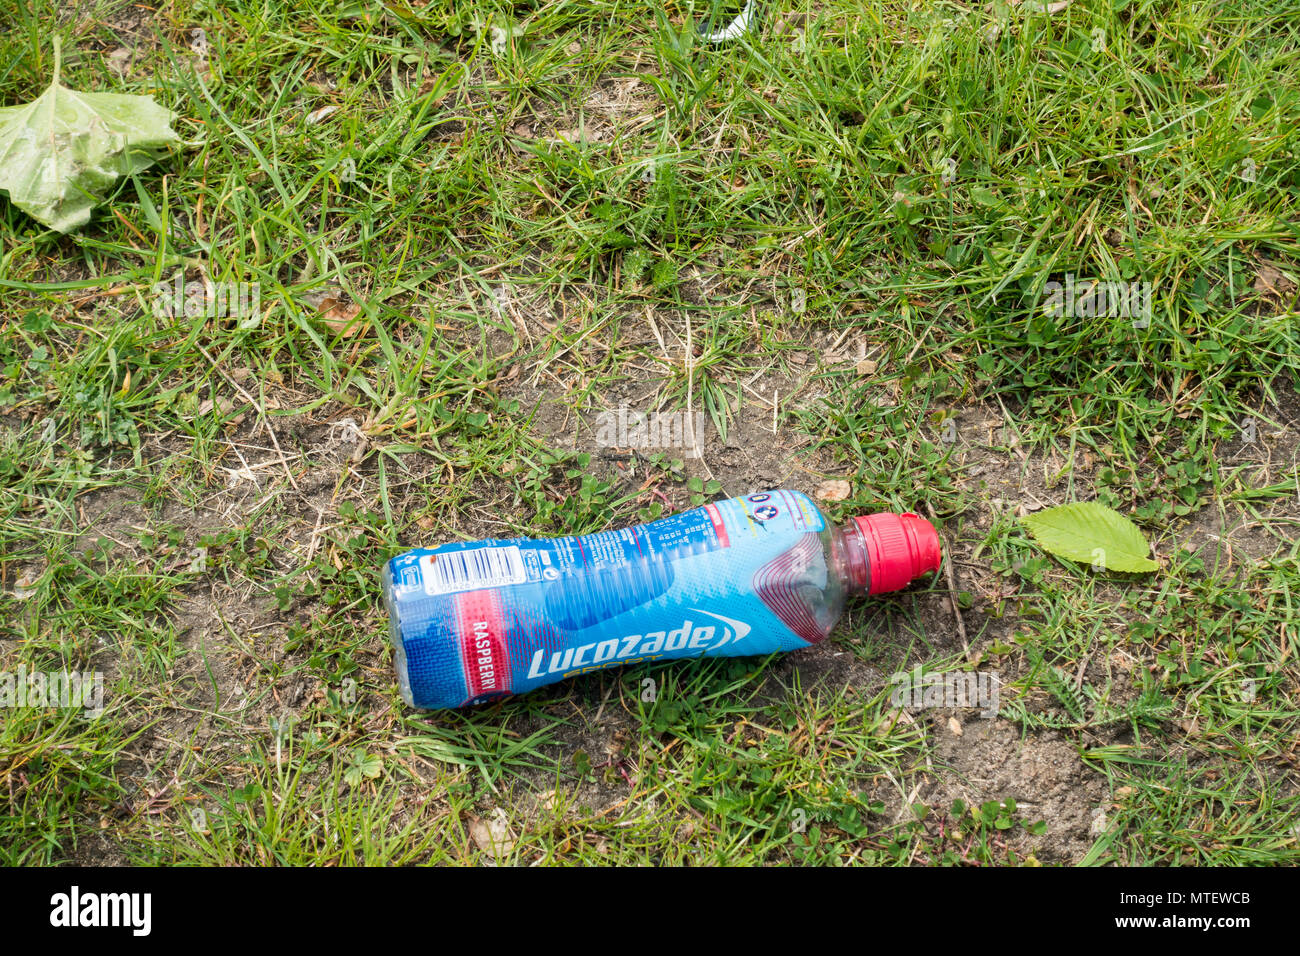 A plastic Lucozade bottle that has been thrown away onto some grass, Dorset, England, United Kingdom - Stock Image